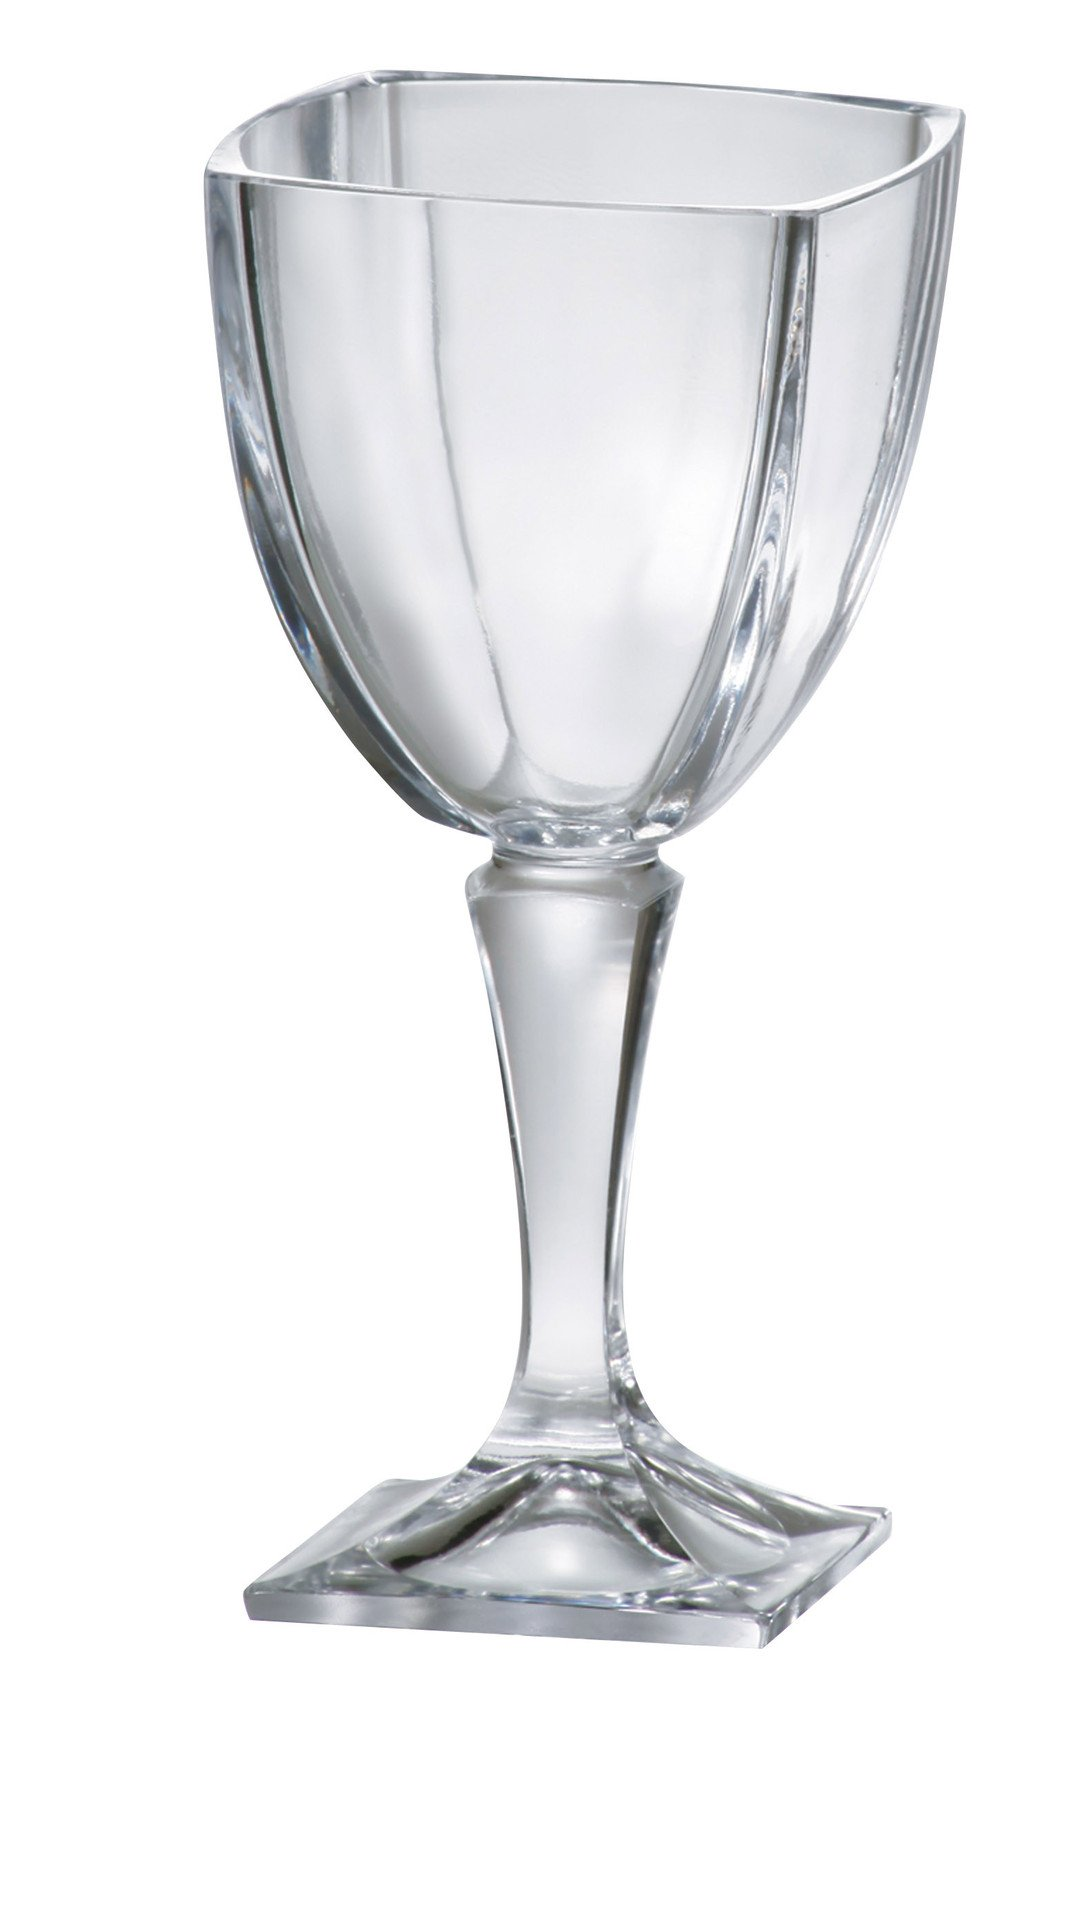 Barski Glass - Lead Free - Beautiful Square Footed Crystalline - Water - Wine Goblet - 10.5 oz. - Made in Europe - Set of 6 by Barski